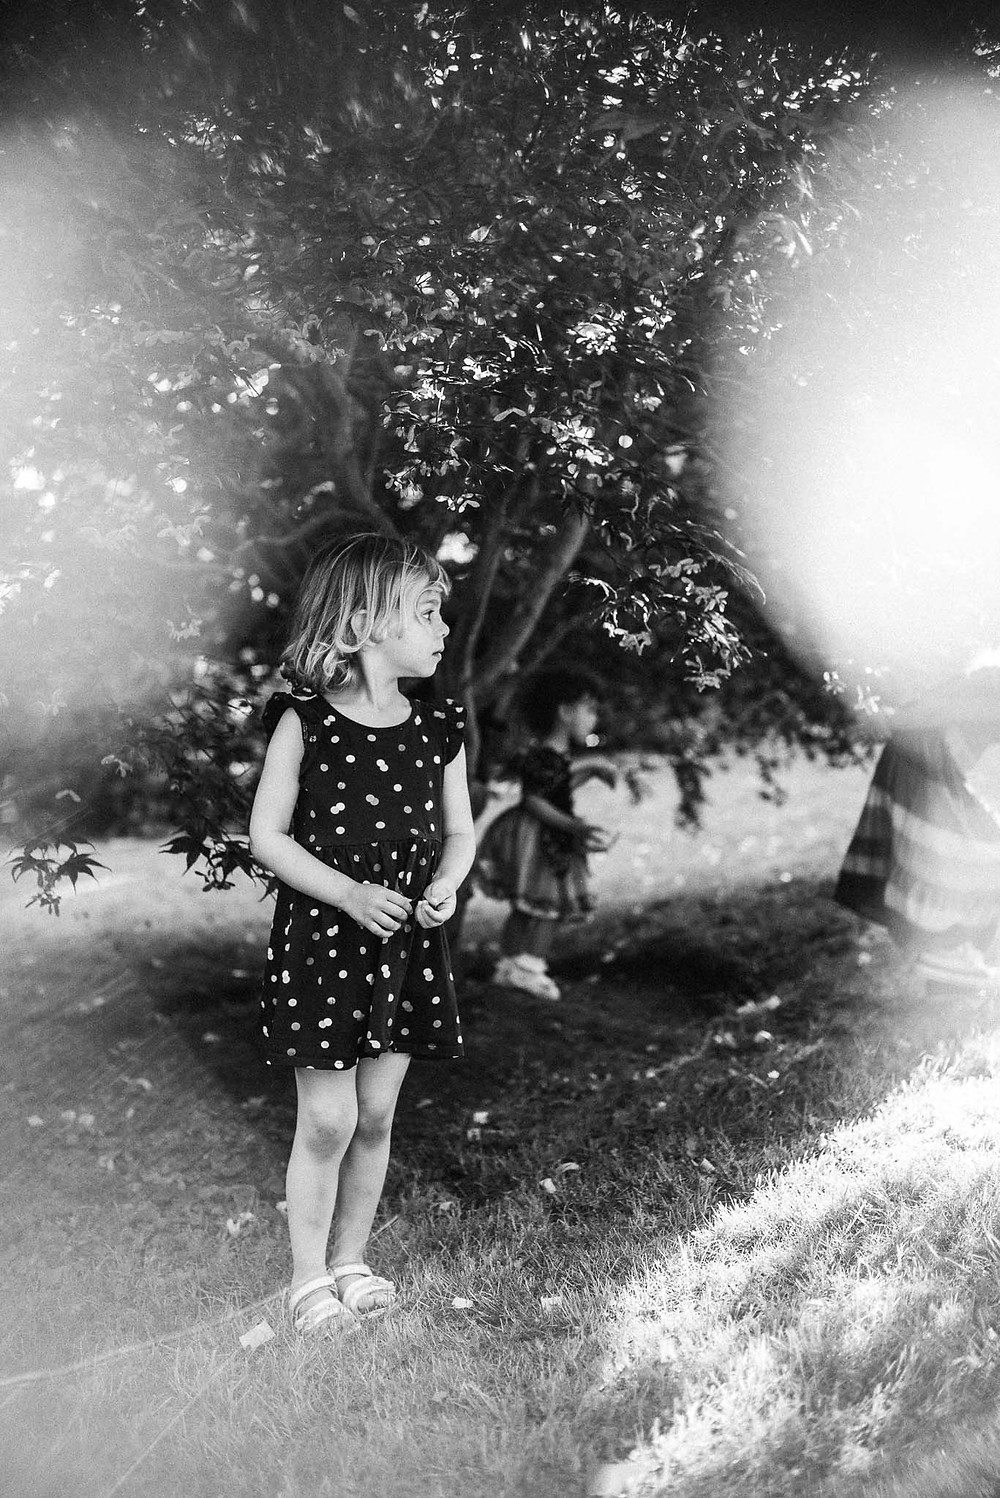 creative child portrait with prism effect